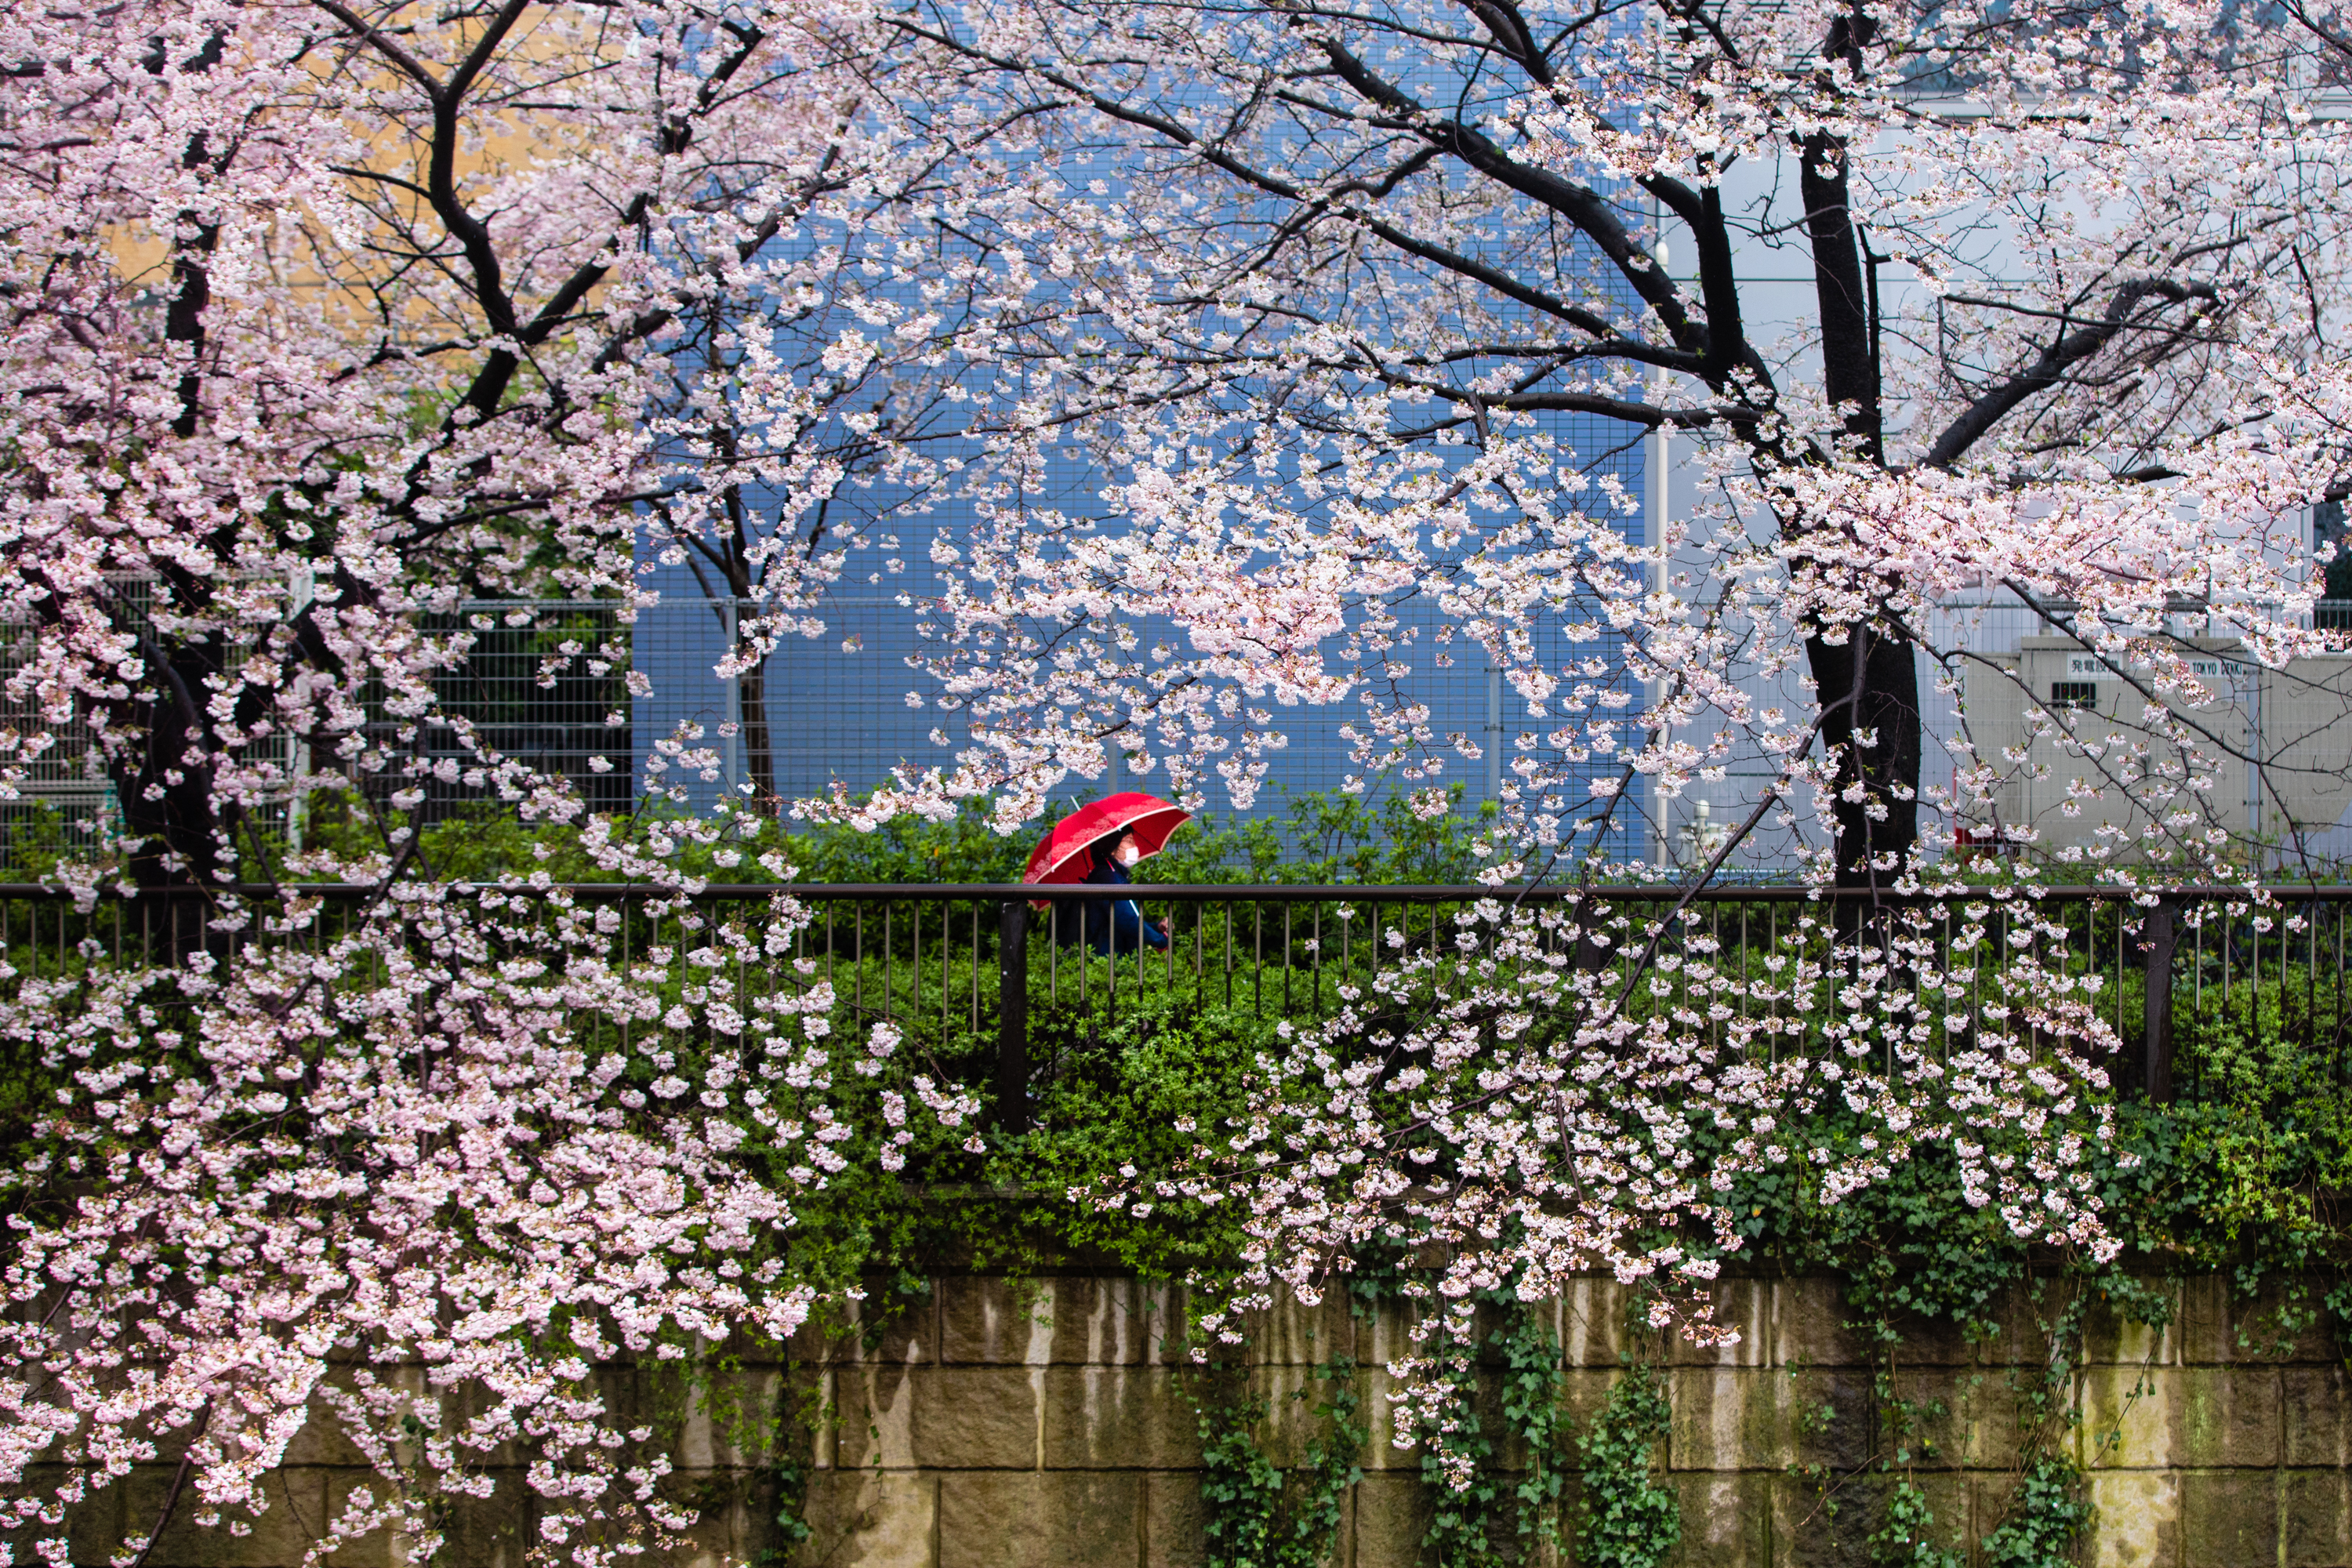 Crowds of millions who normally throng Tokyo's sakura – or cherry blossom – festival largely avoided it this year, on the advice of public health officials. (Saša Petricic/CBC)